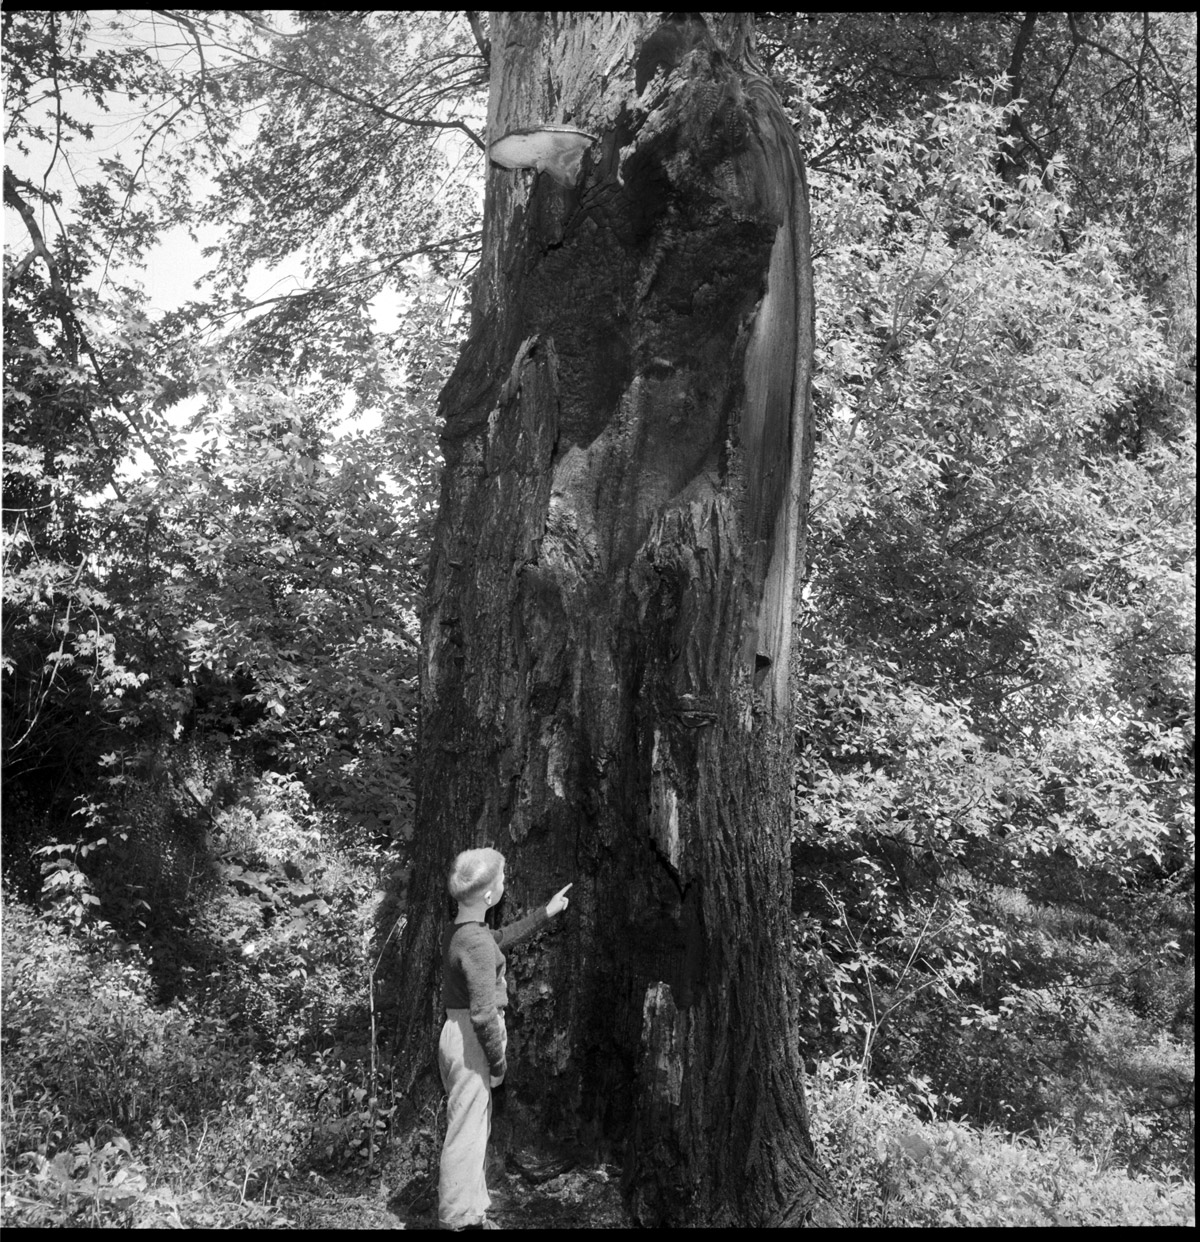 Small boy examining the very large standing burnt out tree trunk.